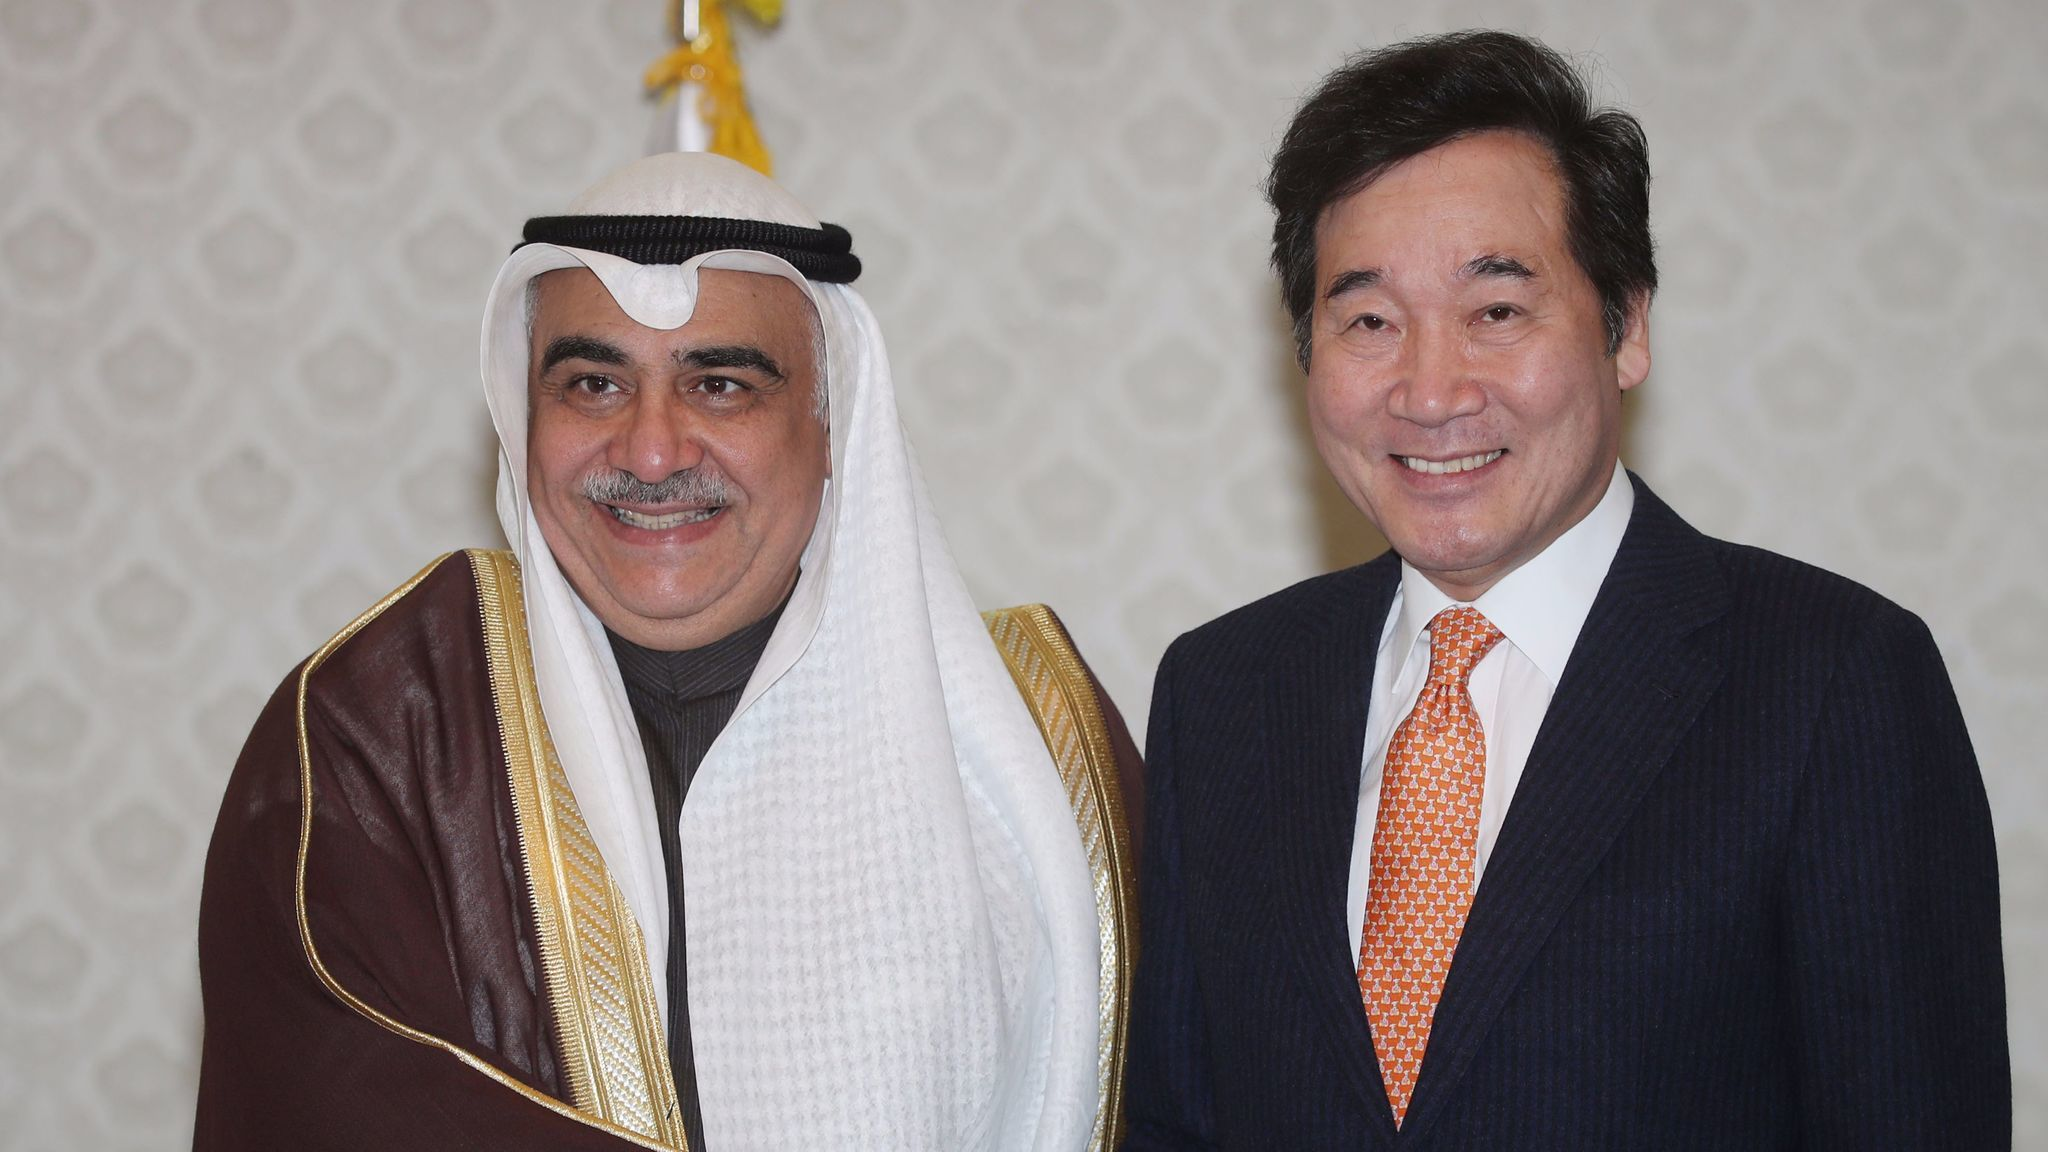 Saudi Arabia's then-Minister of Economy and Planning Adel Fakeih poses with South Korean Prime Minister Lee Nak-yeon on a visit to Seoul in October 2017.